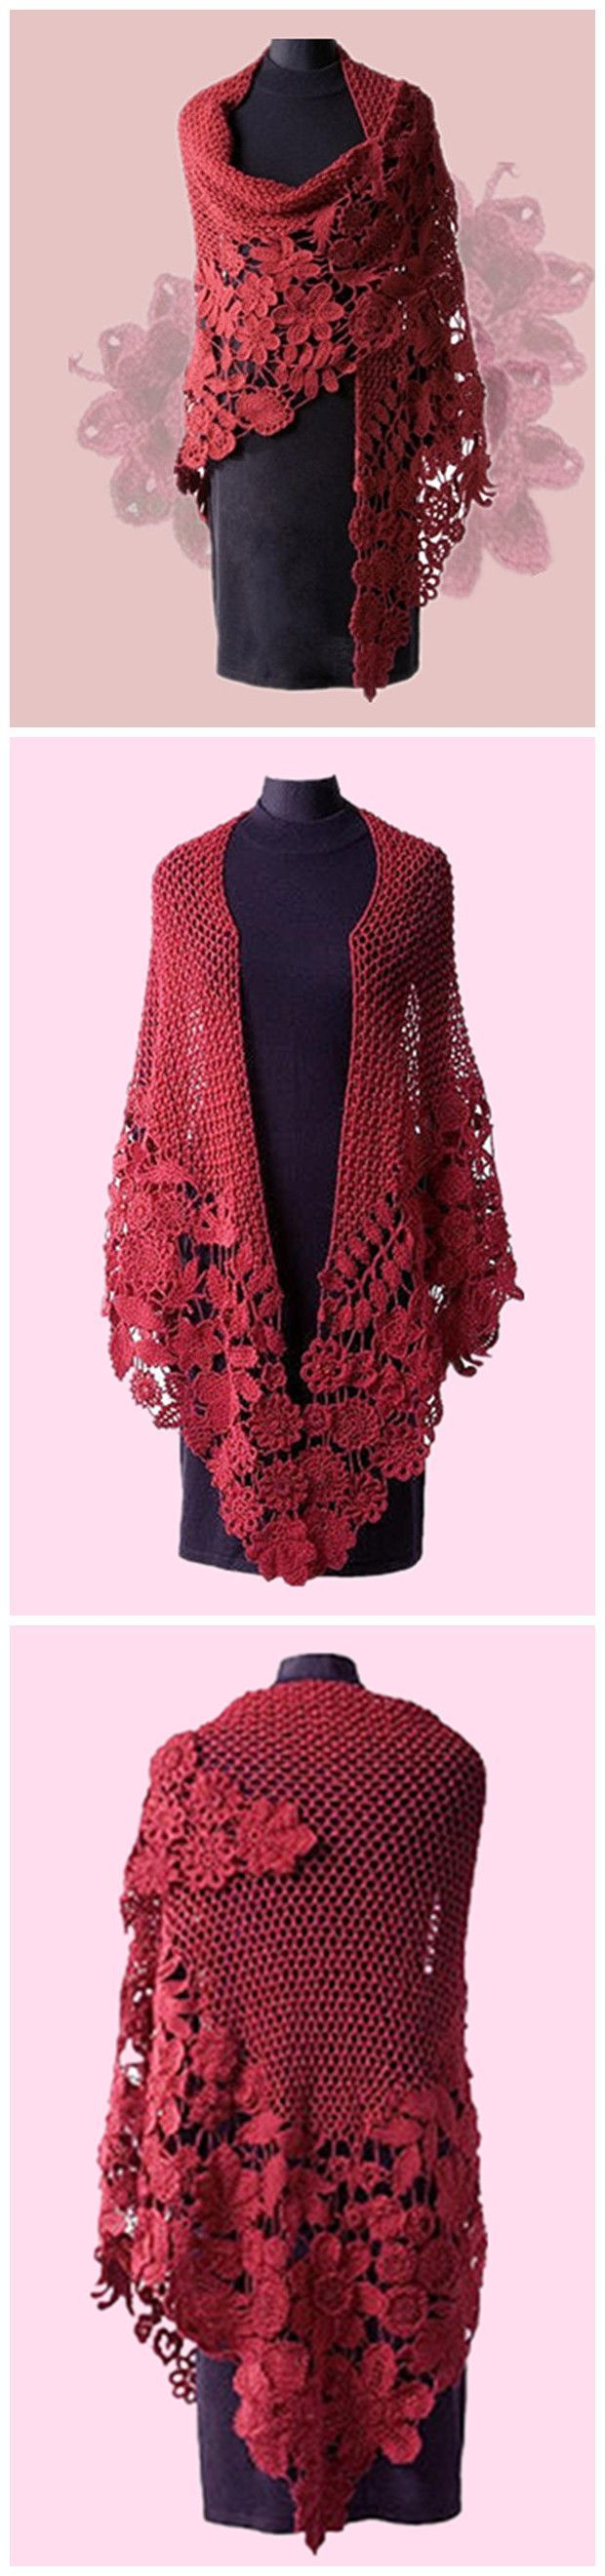 Elegant long crocheted shawl.: